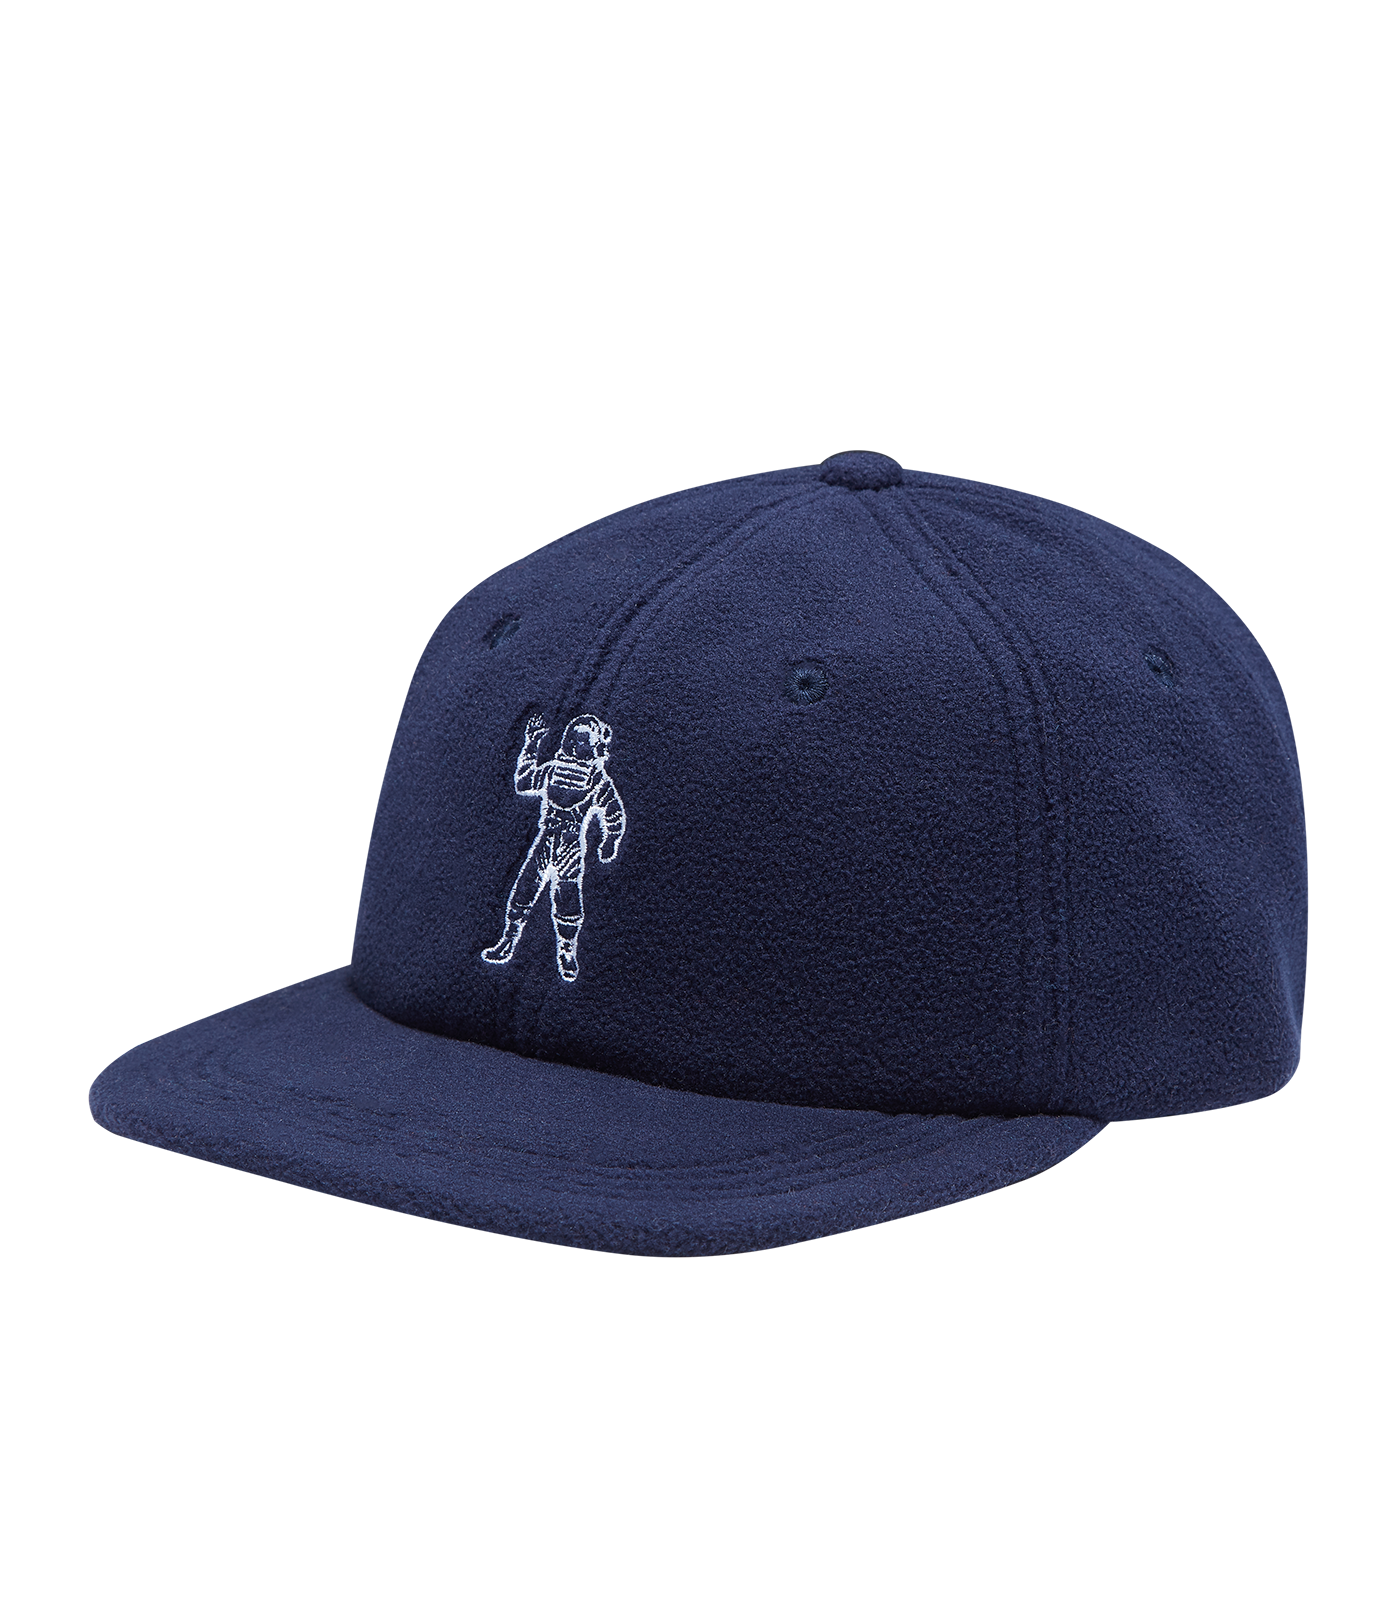 STANDING ASTRO FLEECE CAP - NAVY